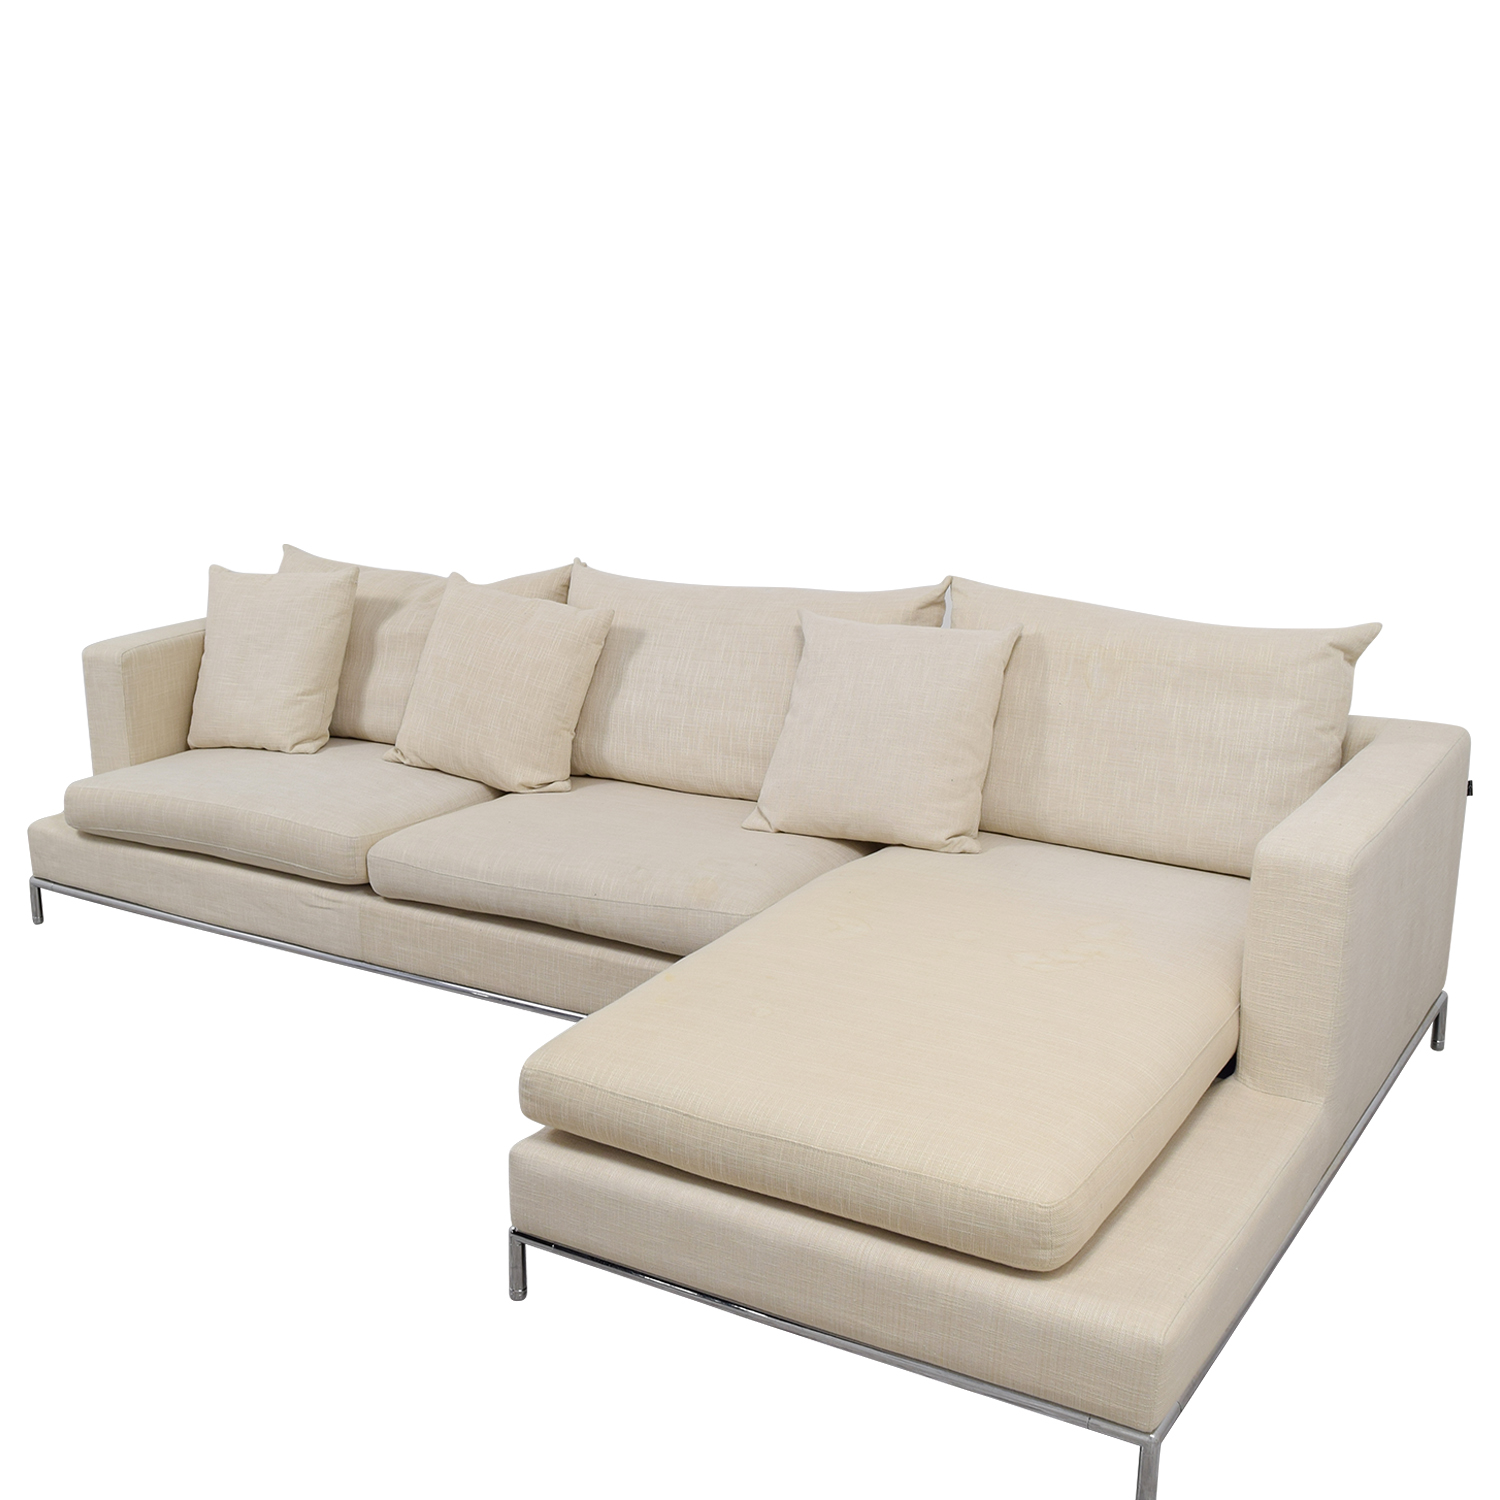 sectional sofas under 1000 00 1970s leather sofa 53 off sohoconcept simena beige chaise